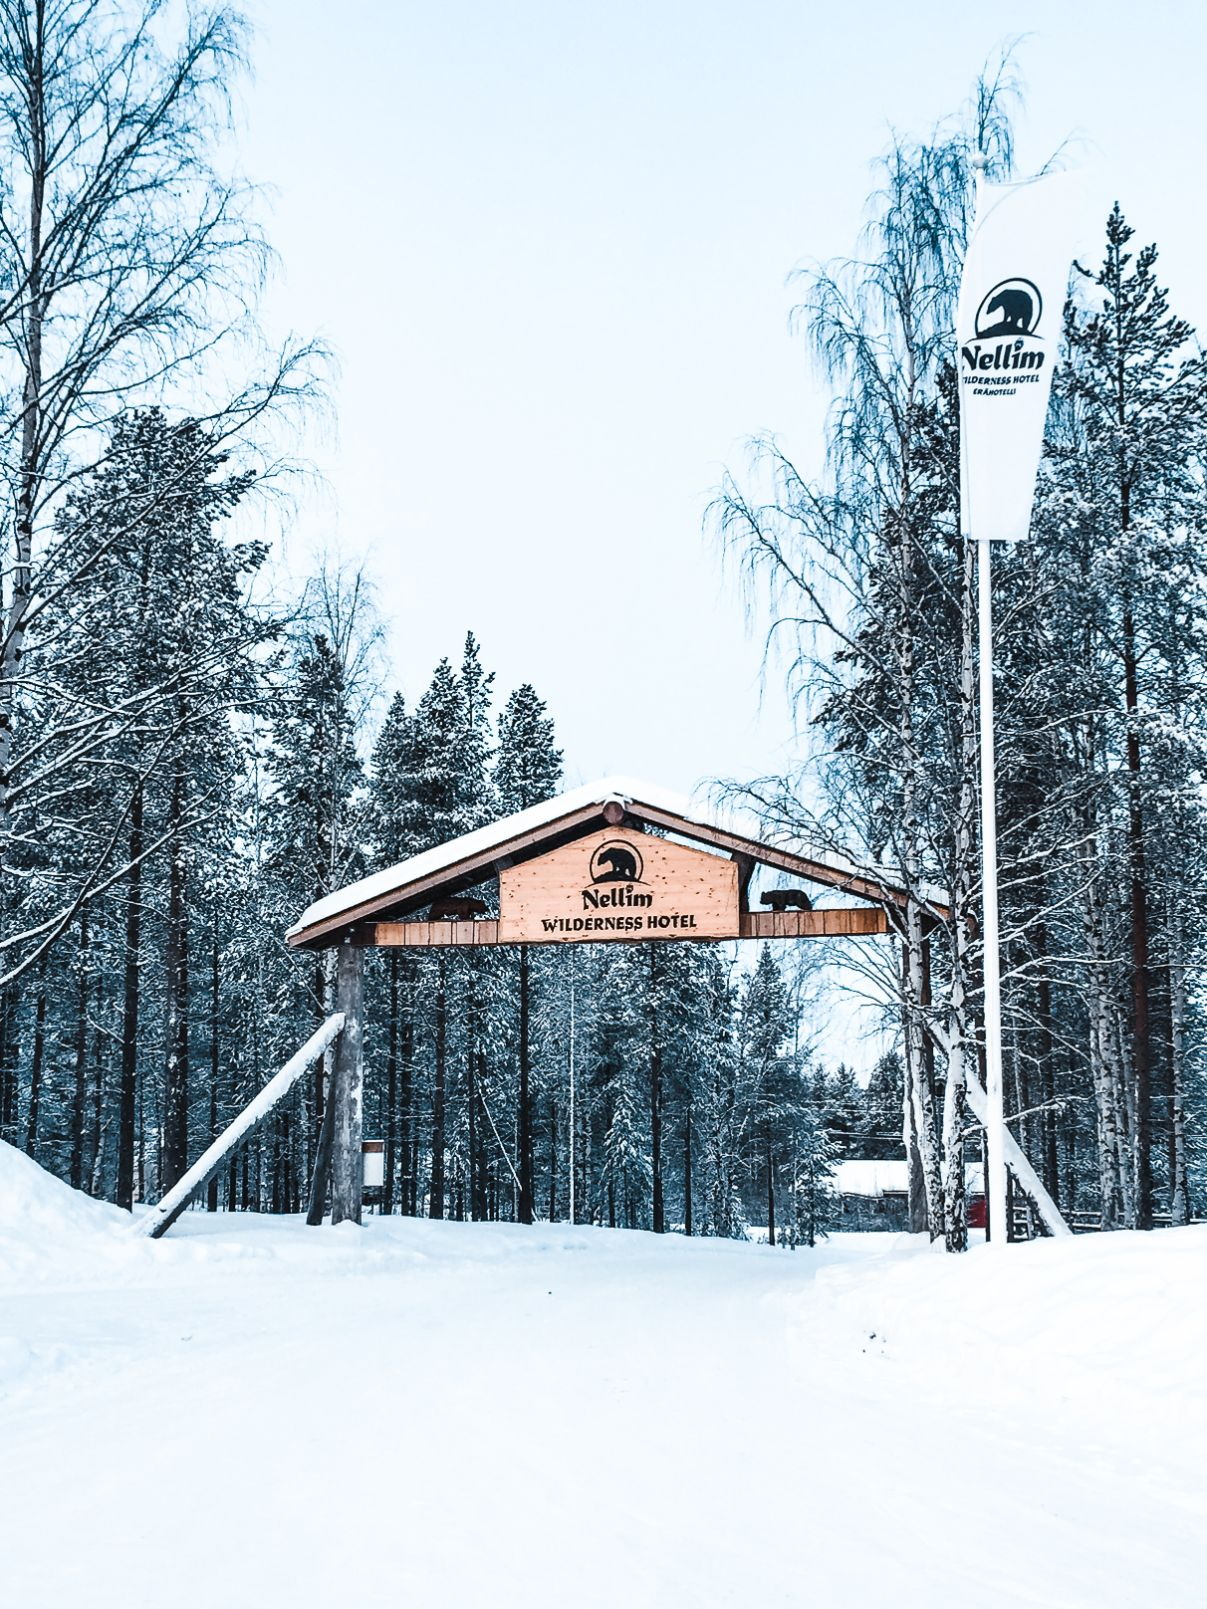 entrance to nellim wildnerness hotel in Finnish Lapland with wooden sign and flag with hotel name